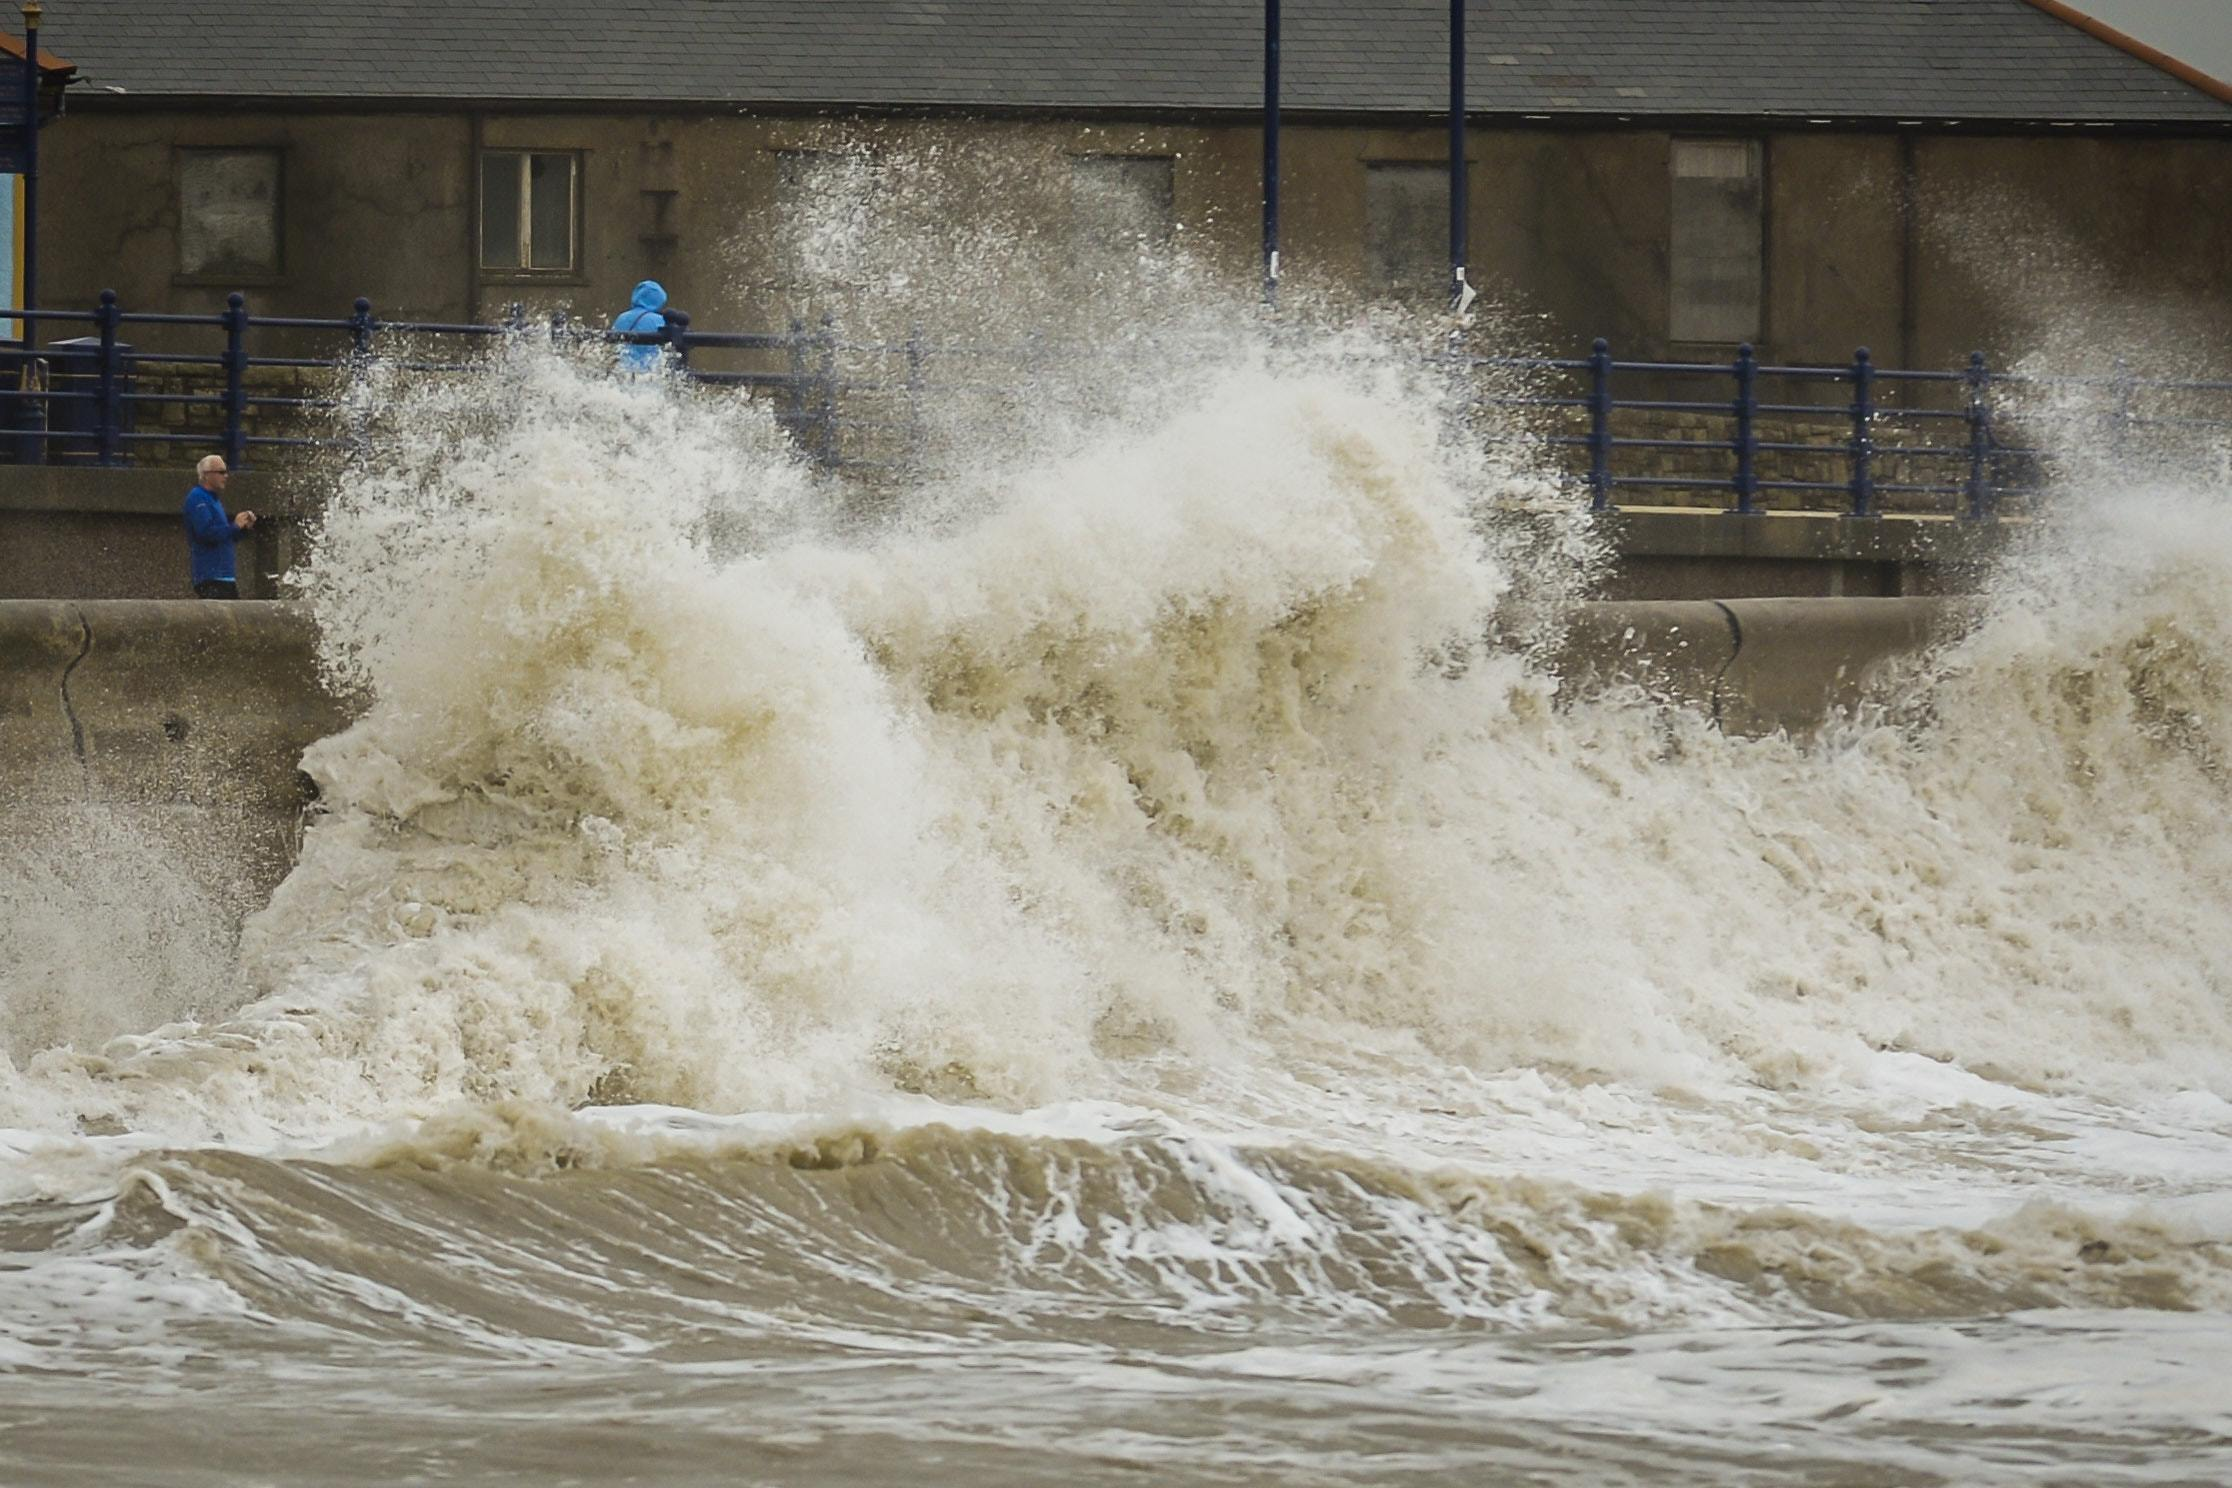 Storm Bronagh: more wind and heavy rain expected across UK